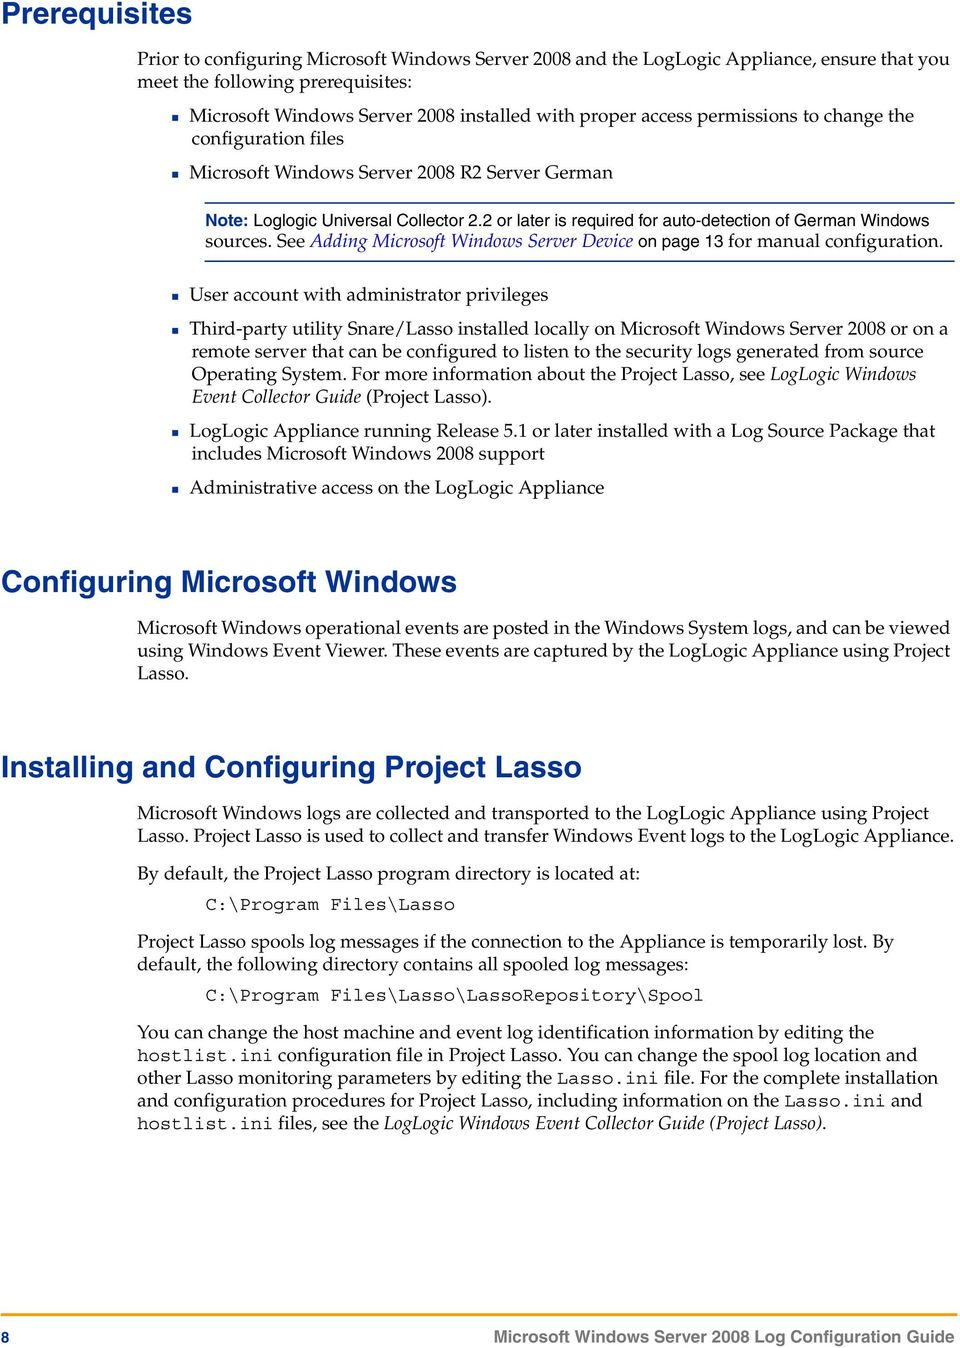 2 or later is required for auto-detection of German Windows sources. See Adding Microsoft Windows Server Device on page 13 for manual configuration.